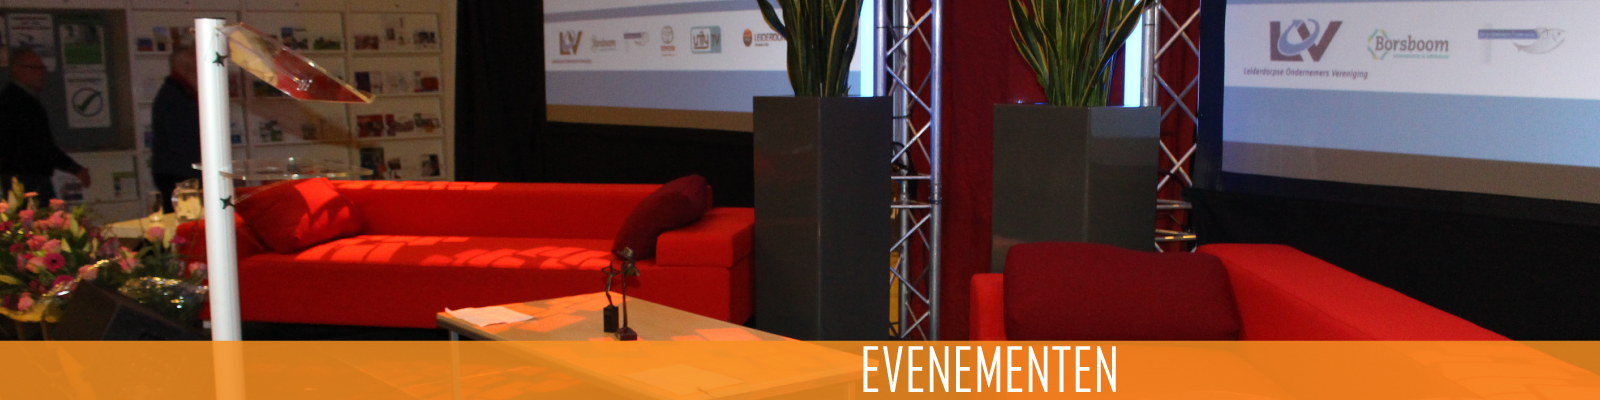 20160200-Site-slider-Evenementen